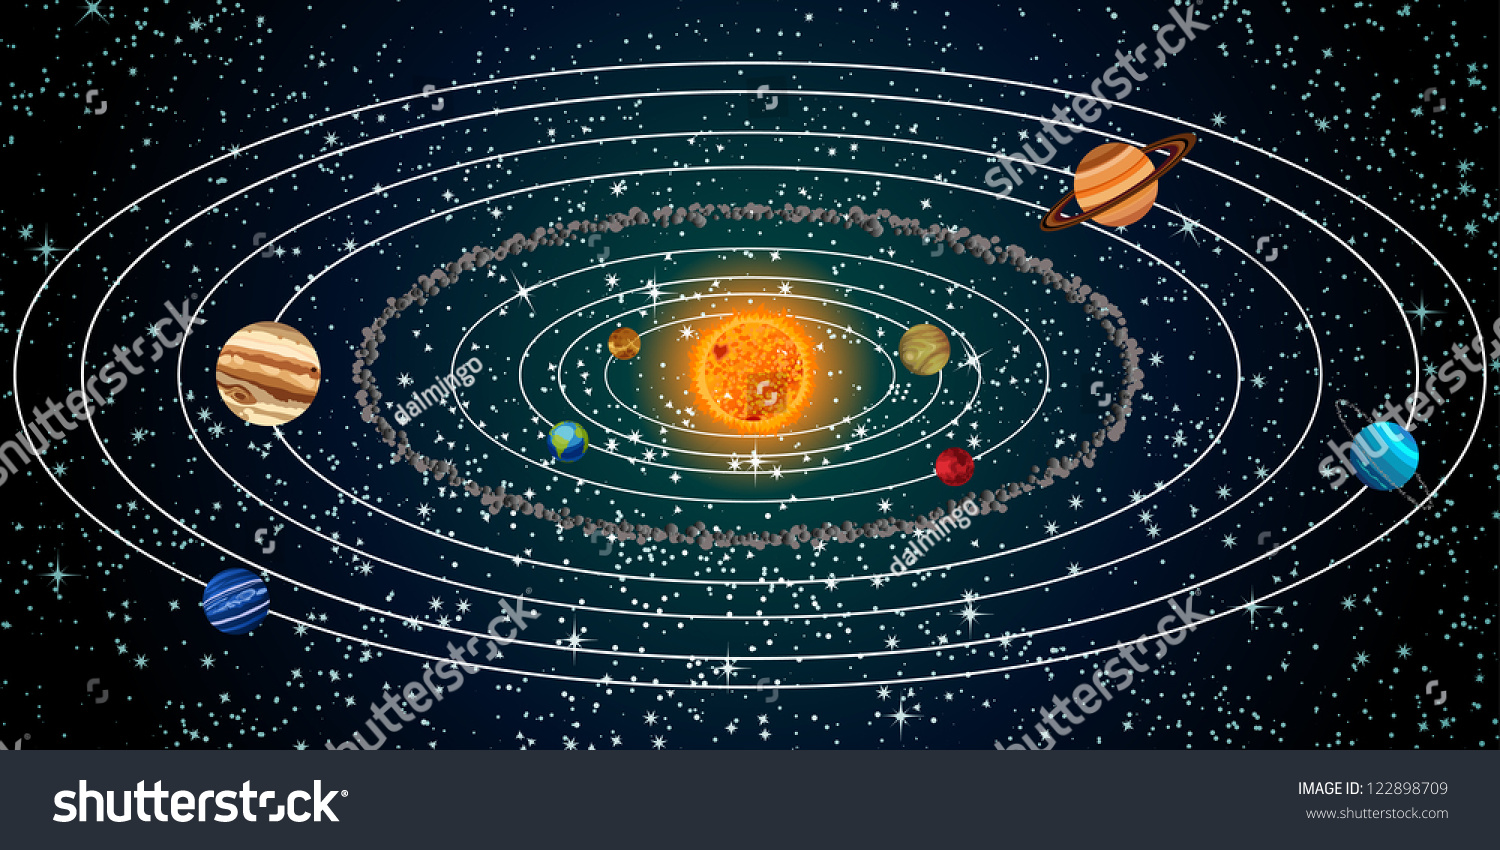 diagram of the planets in order 1955 chevy wiring solar system sun stars colorful stock illustration 122898709 - shutterstock